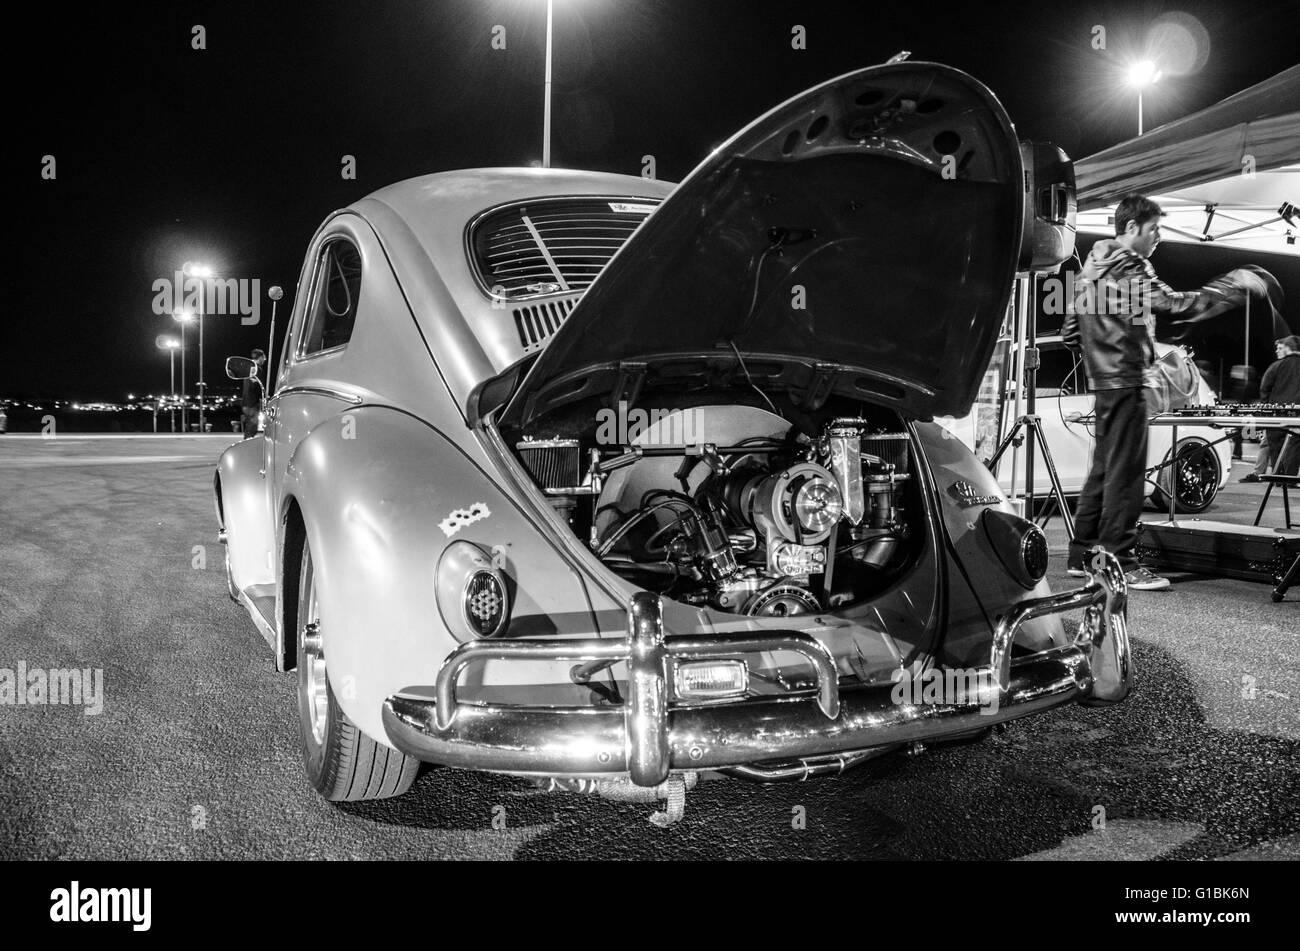 Sydney, Australia - 31st July 2015: Modified and exotic car / bike enthusiasts headed to the July end of month meet - Stock Image